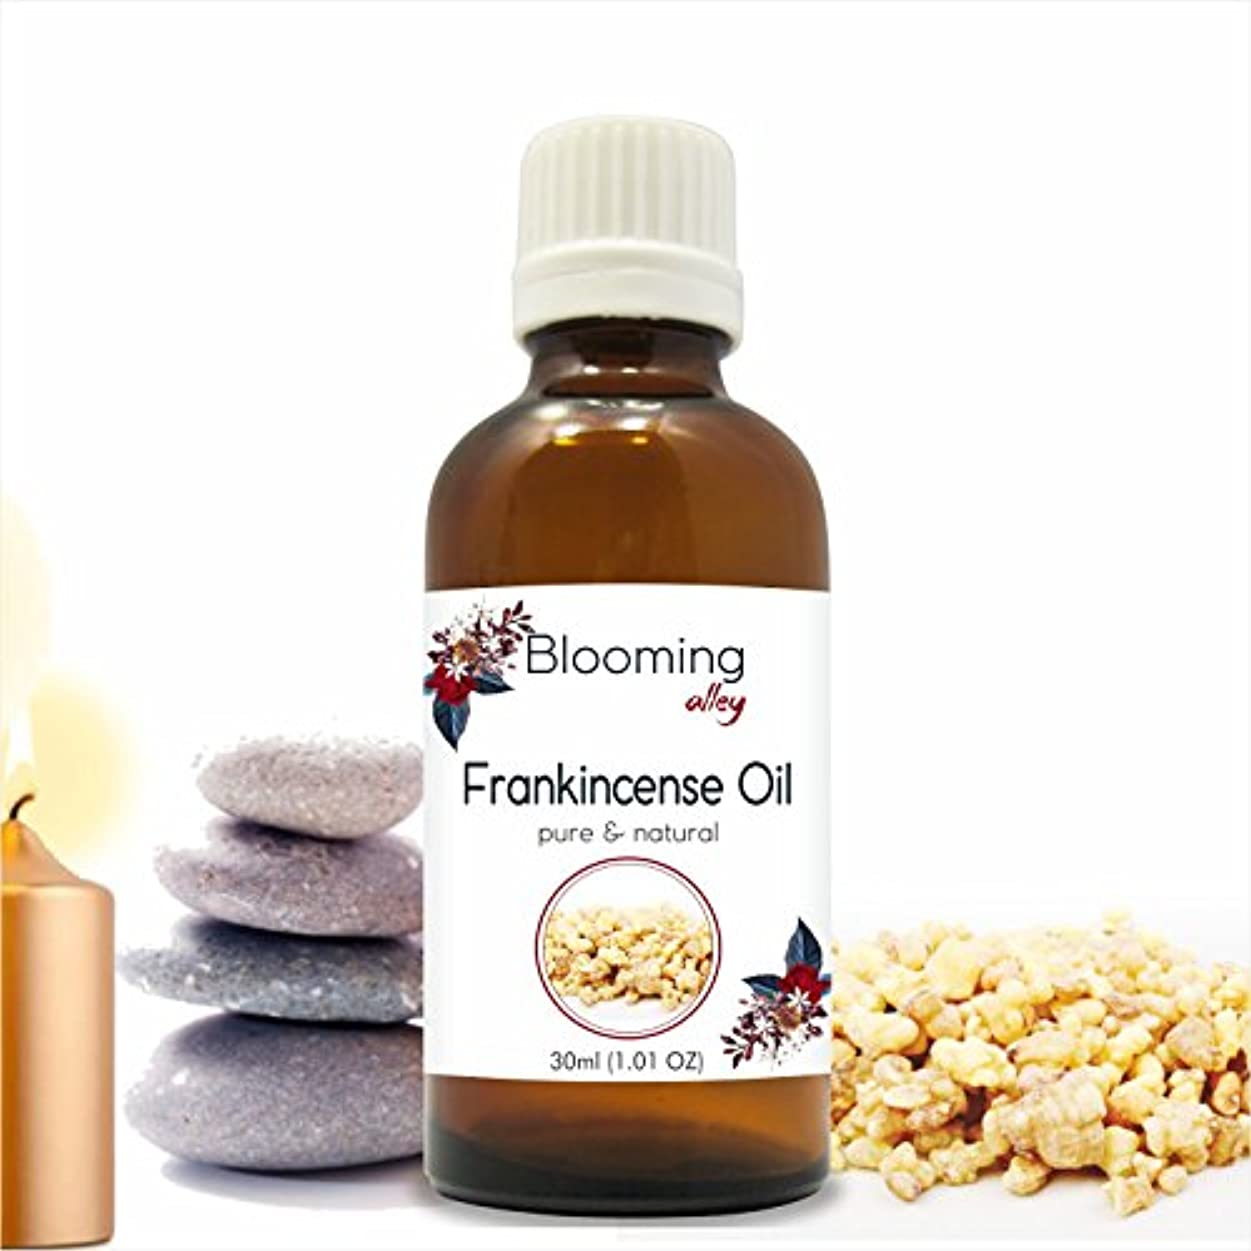 Frankincense Oil (Boswellia Carteri) Essential Oil 30 ml or 1.0 Fl Oz by Blooming Alley